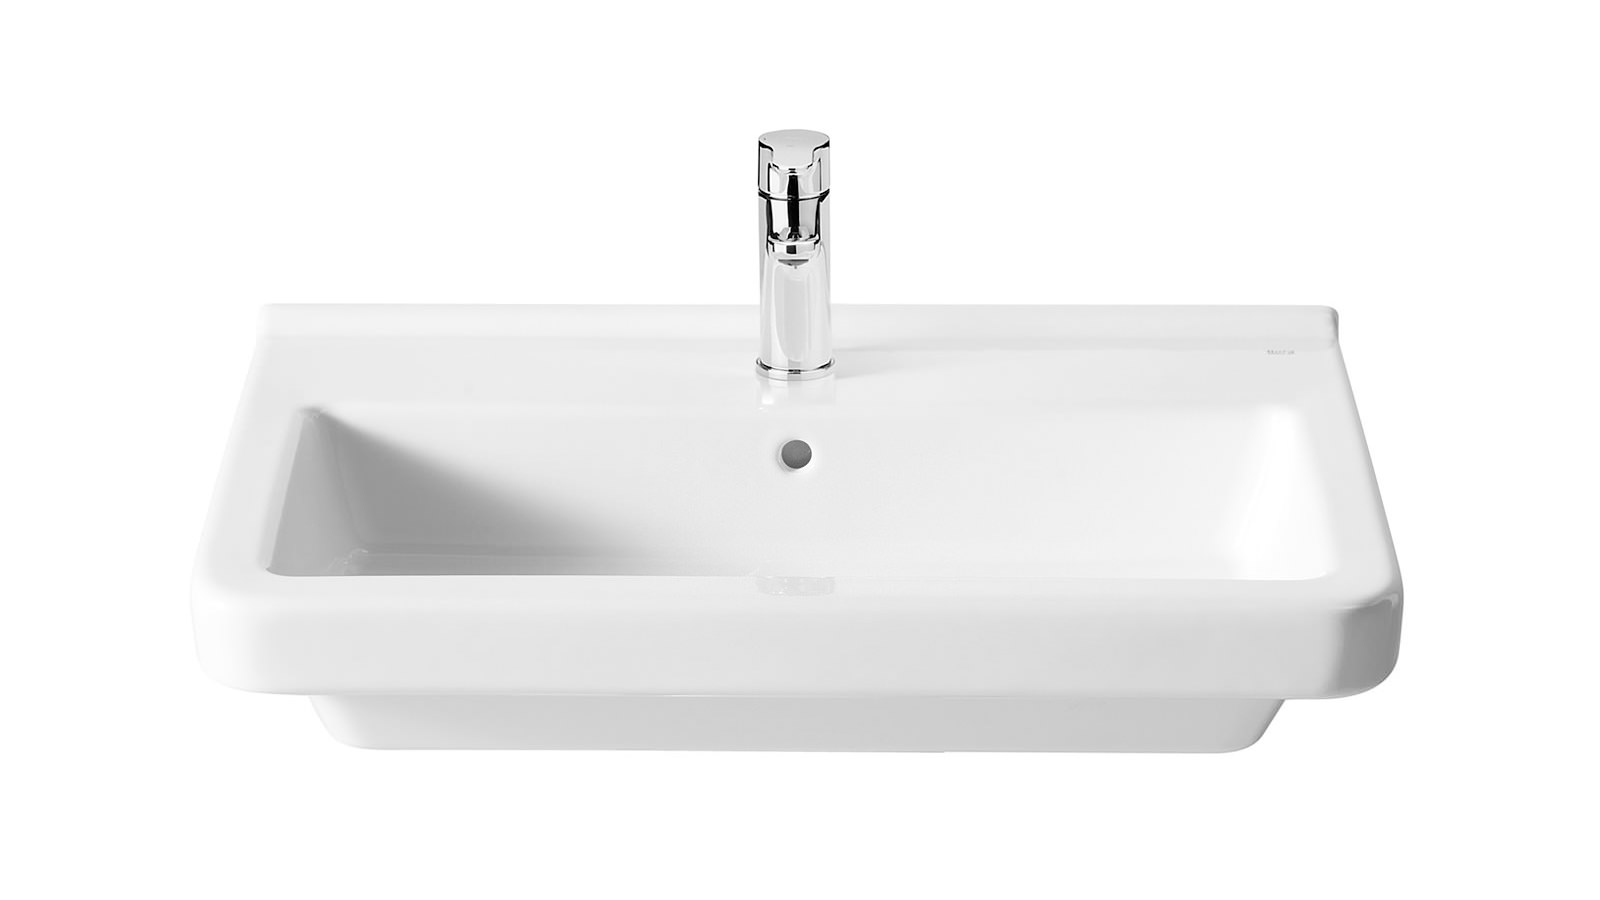 roca bathroom sinks roca dama n 1 tap basin 600mm 327784000 14235 | L 2015 1 20 12 13 36 452